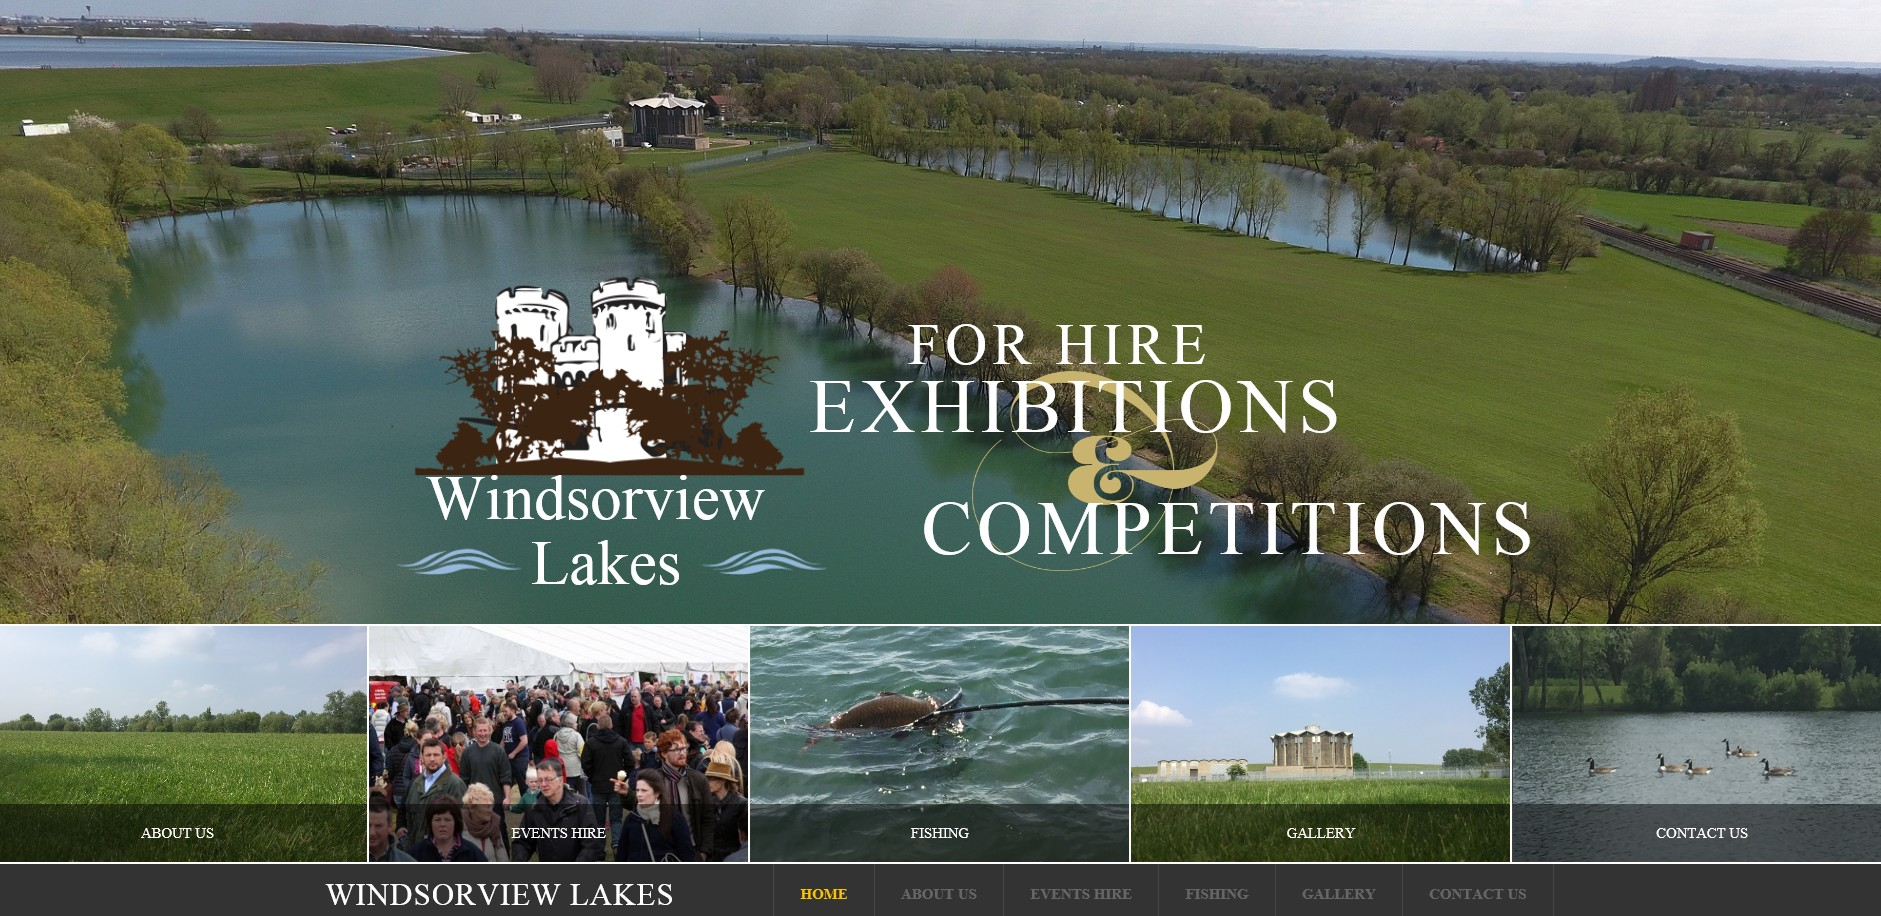 Website for Windsorview Lakes